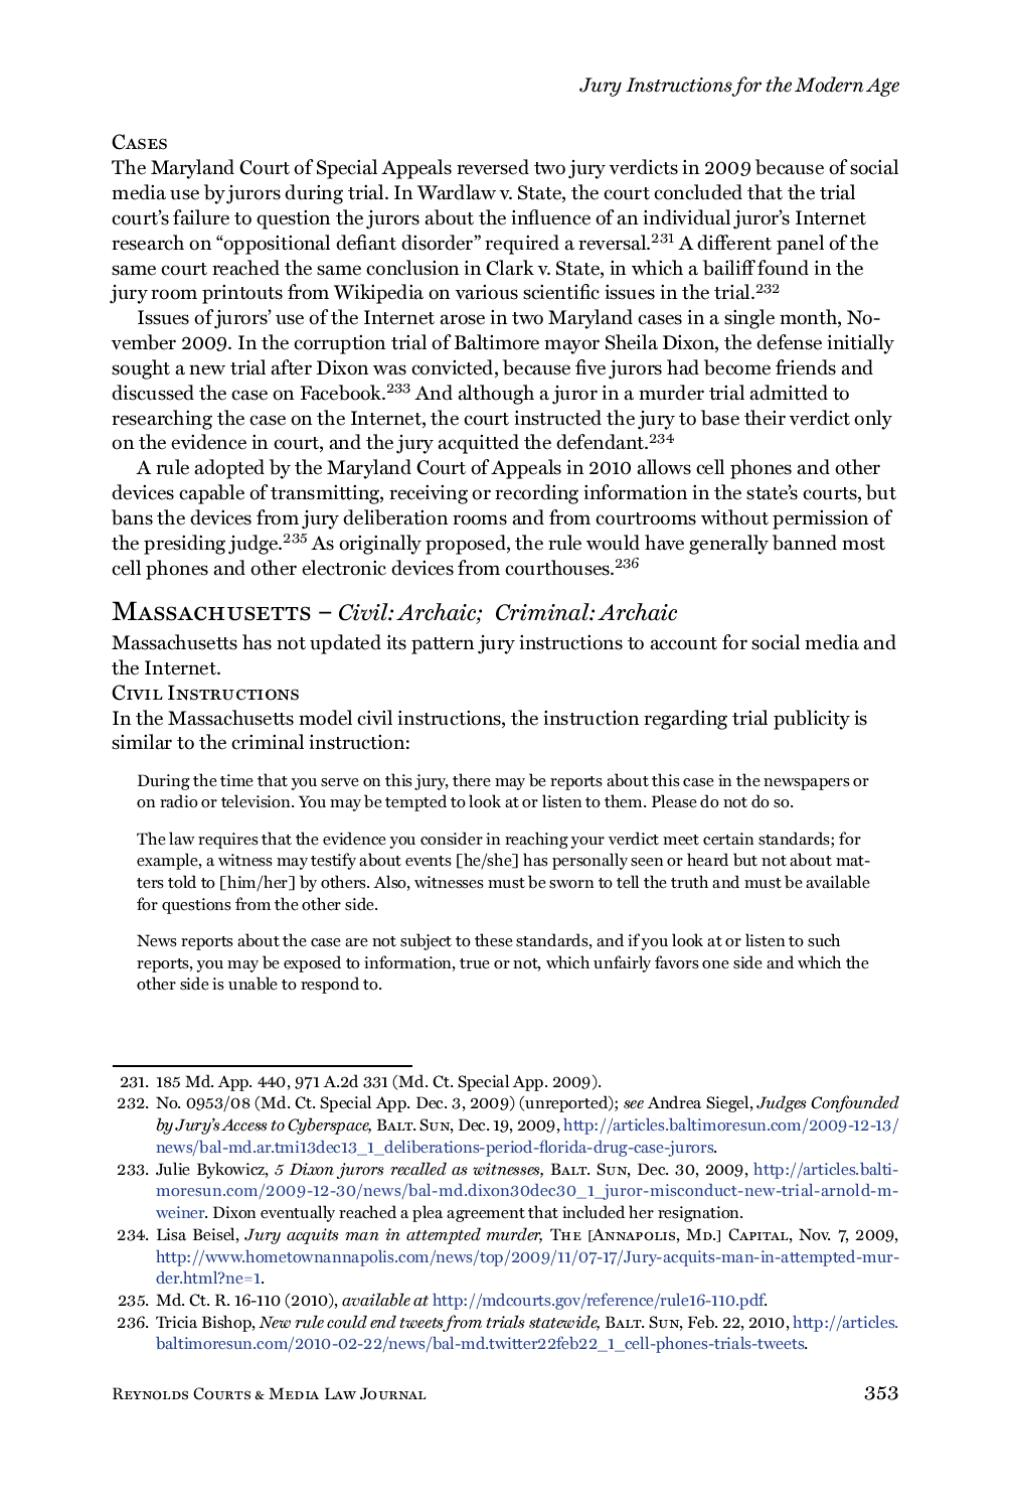 vol 1 issue 3 by Reynolds National Center for Courts and Media - issuu